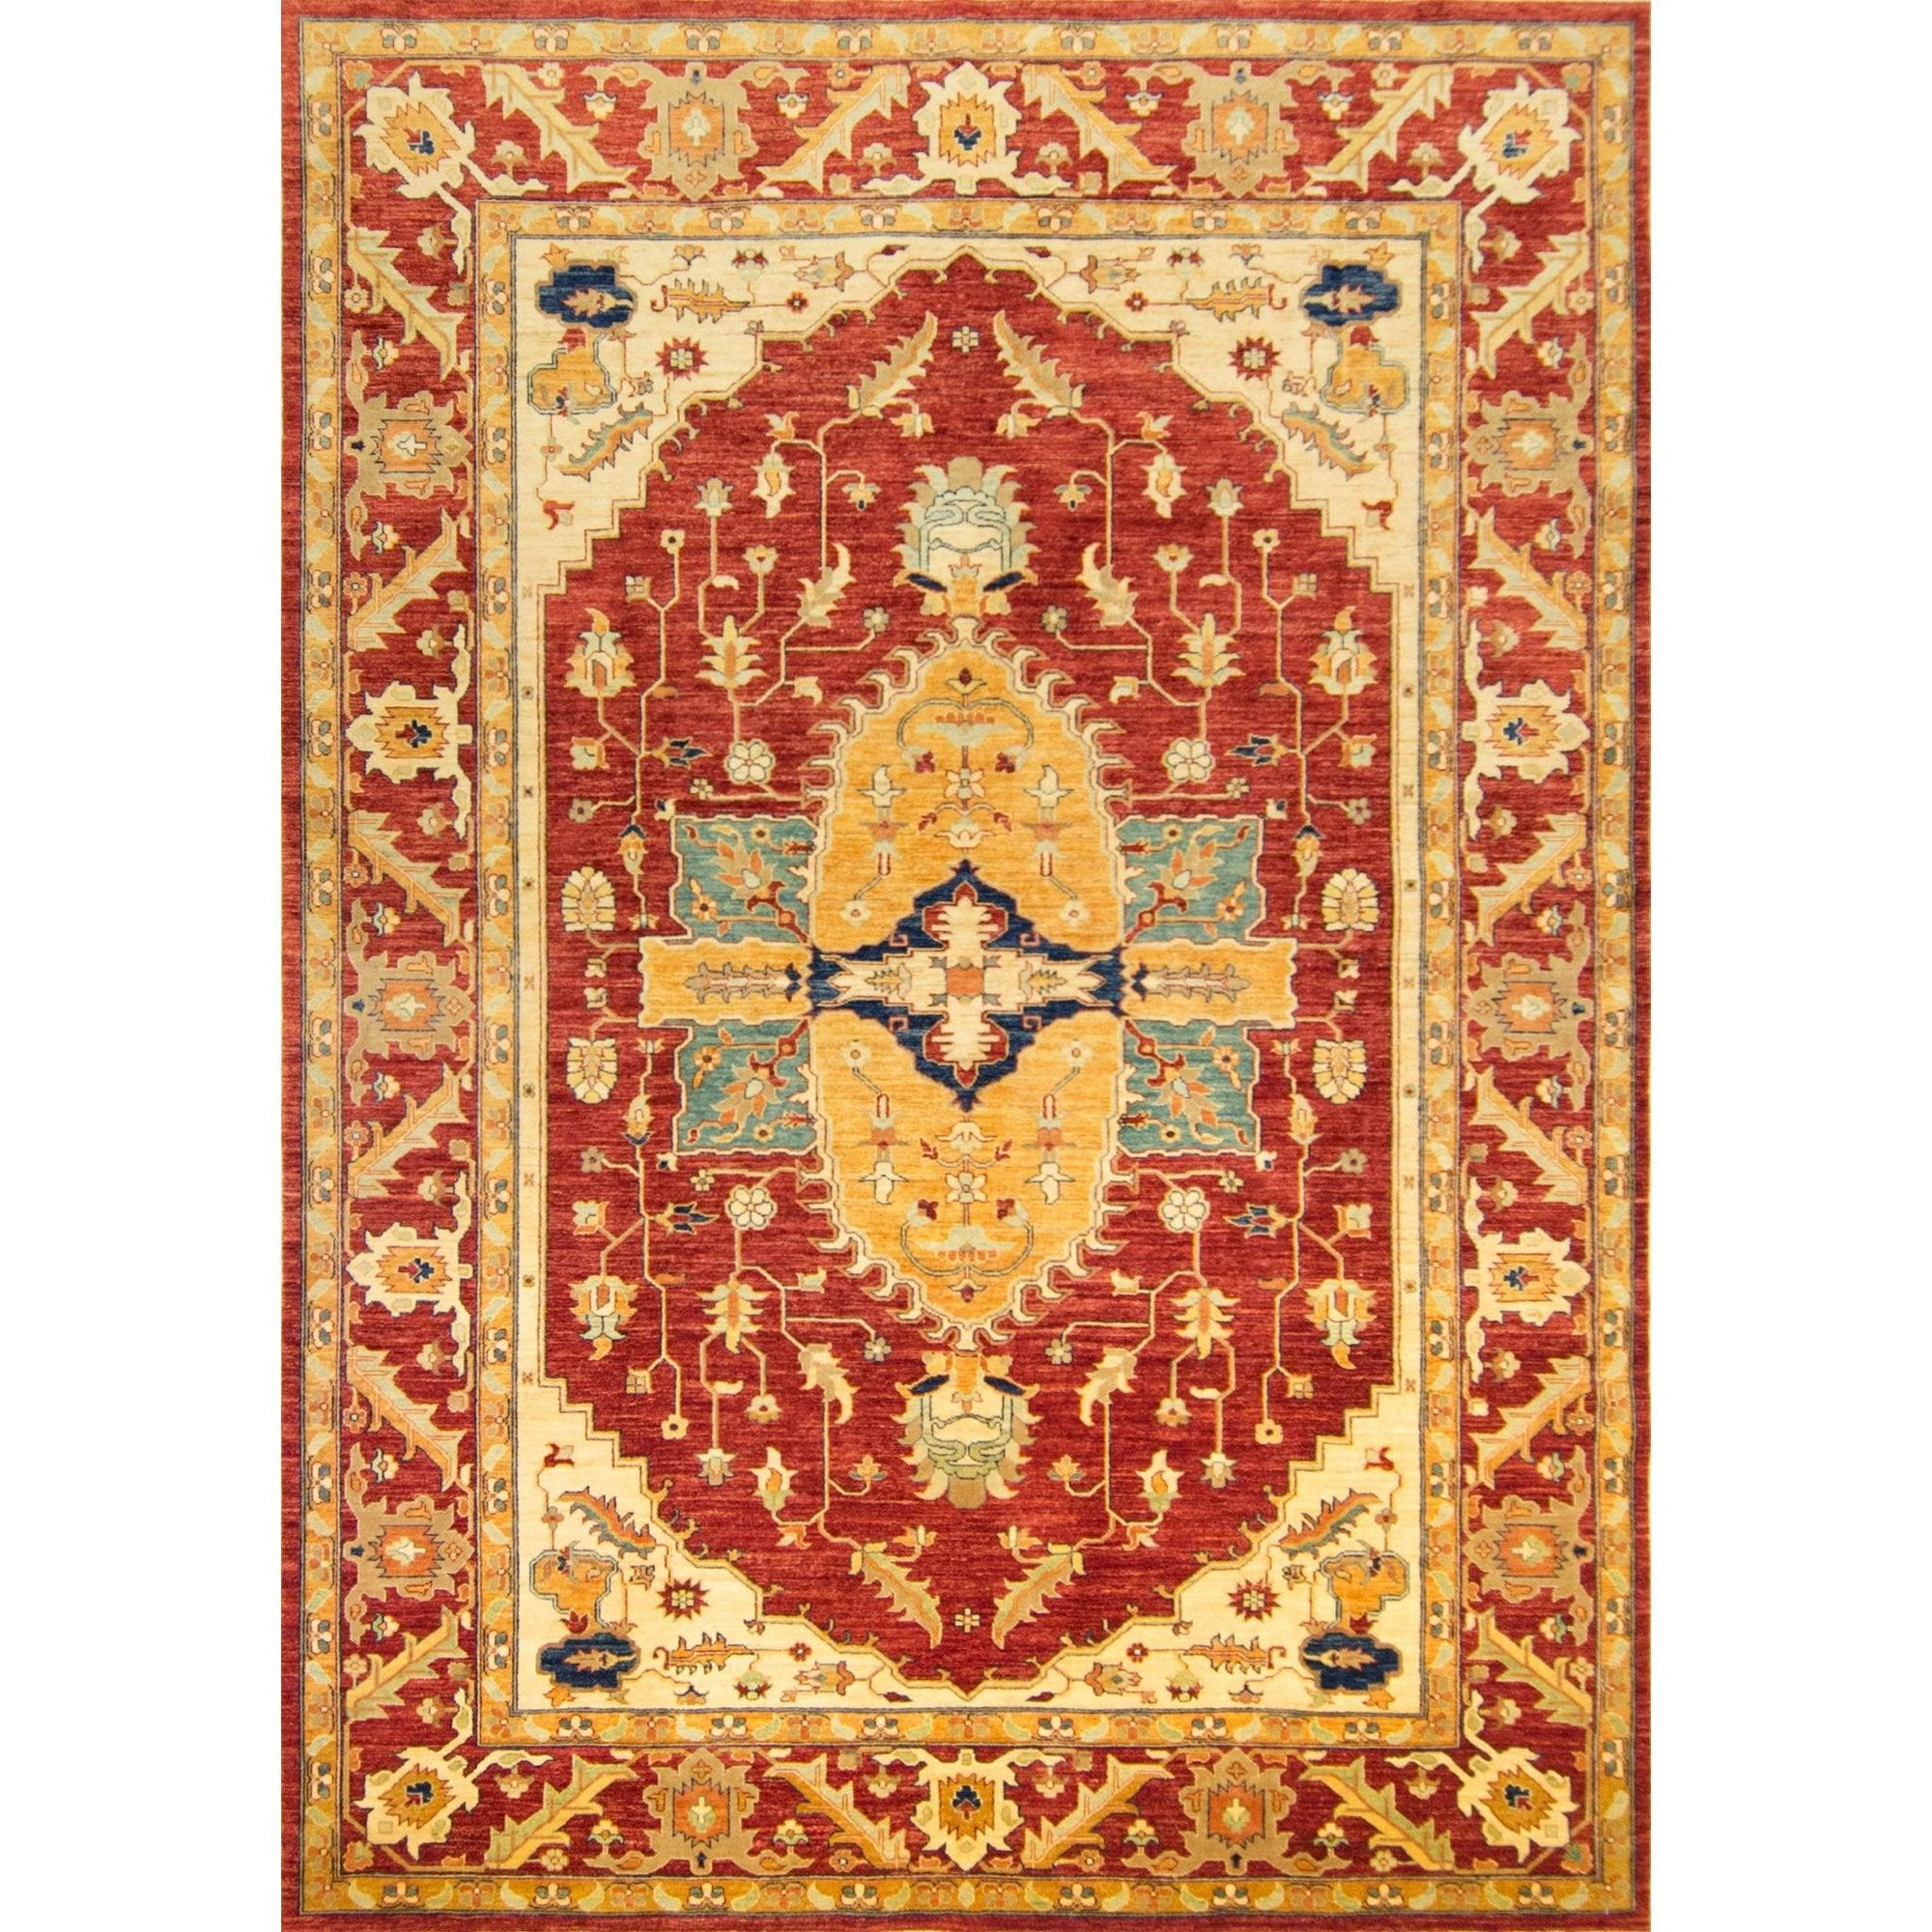 Fine Hand-knotted Wool Heriz Rug 240cm x 340cm Persian-Rug | House-of-Haghi | NewMarket | Auckland | NZ | Handmade Persian Rugs | Hand Knotted Persian Rugs